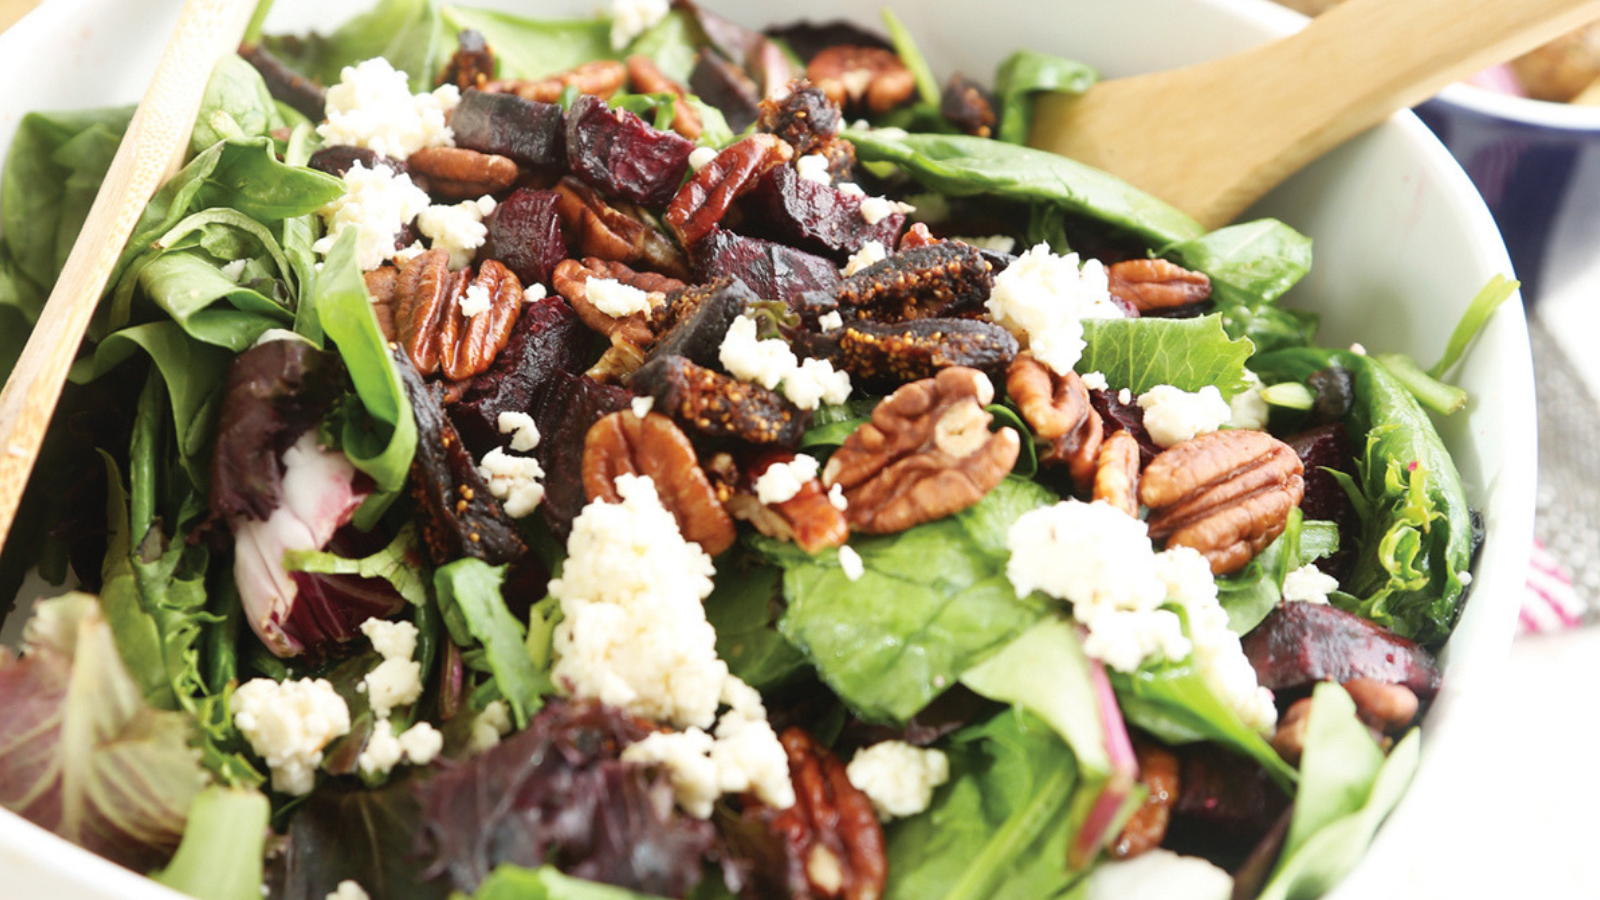 Roasted Beet & Fig Salad with Maple Dijon Dressing